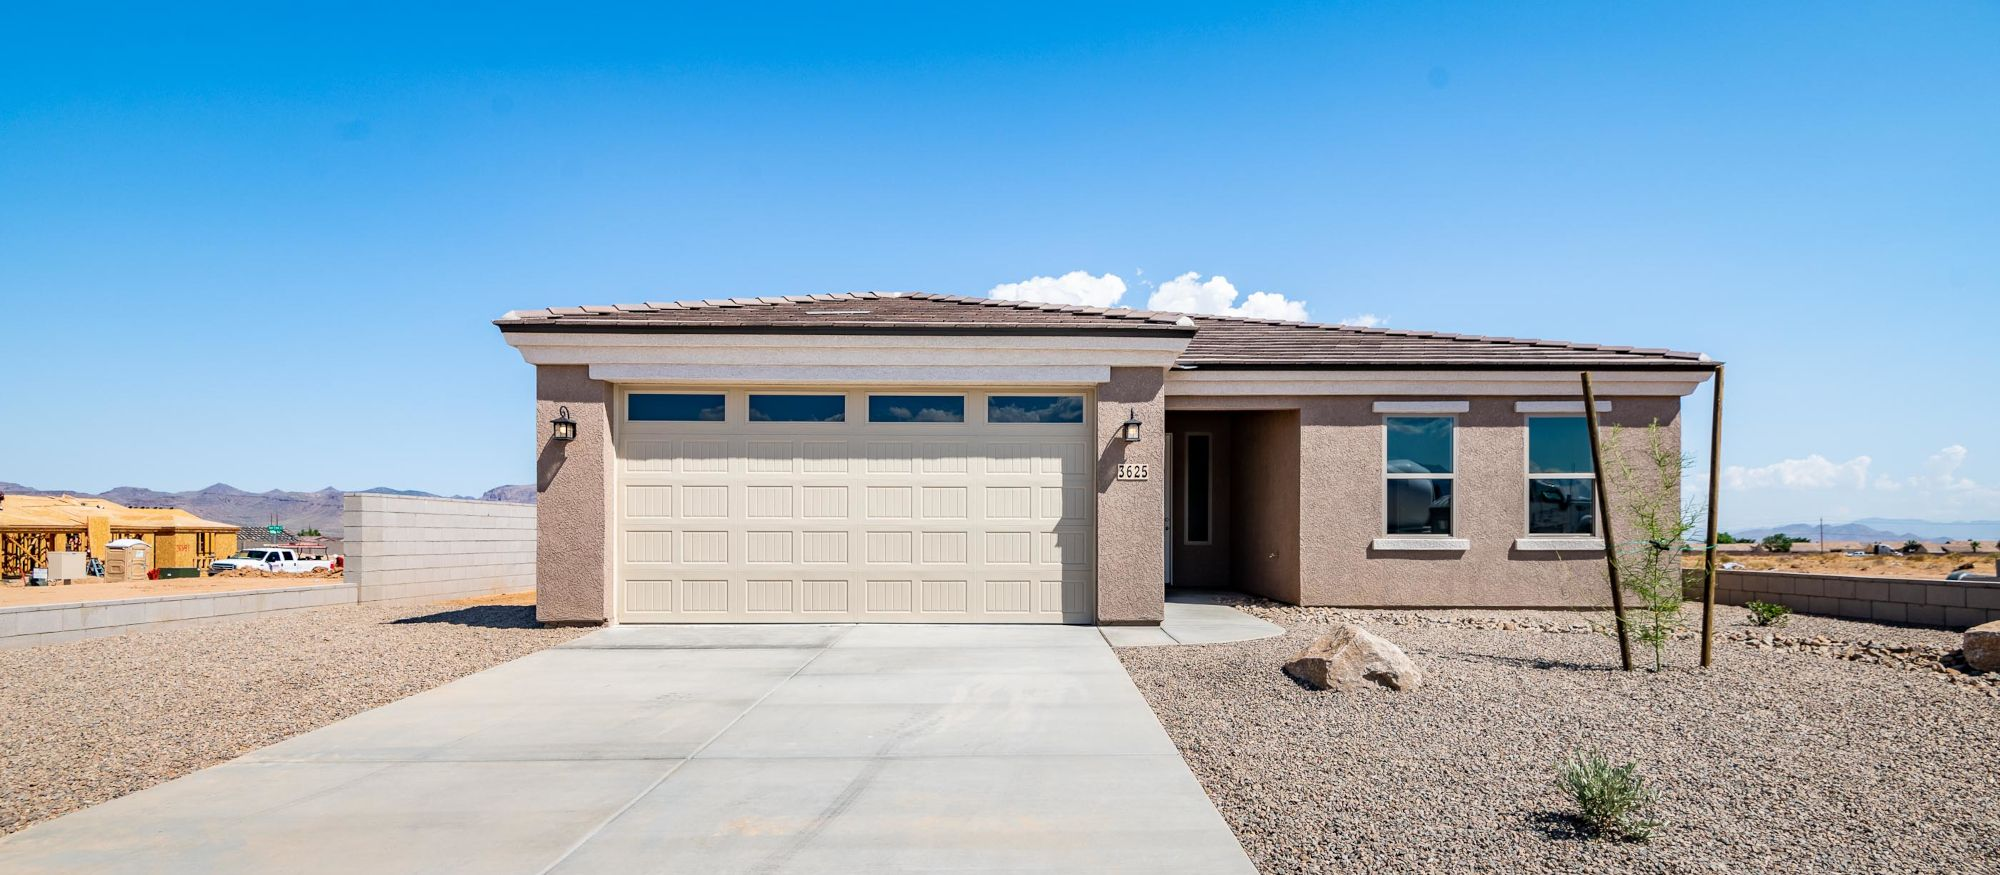 Exterior featured in the Ironwood 1593 2 Car By Angle Homes in Kingman-Lake Havasu City, AZ